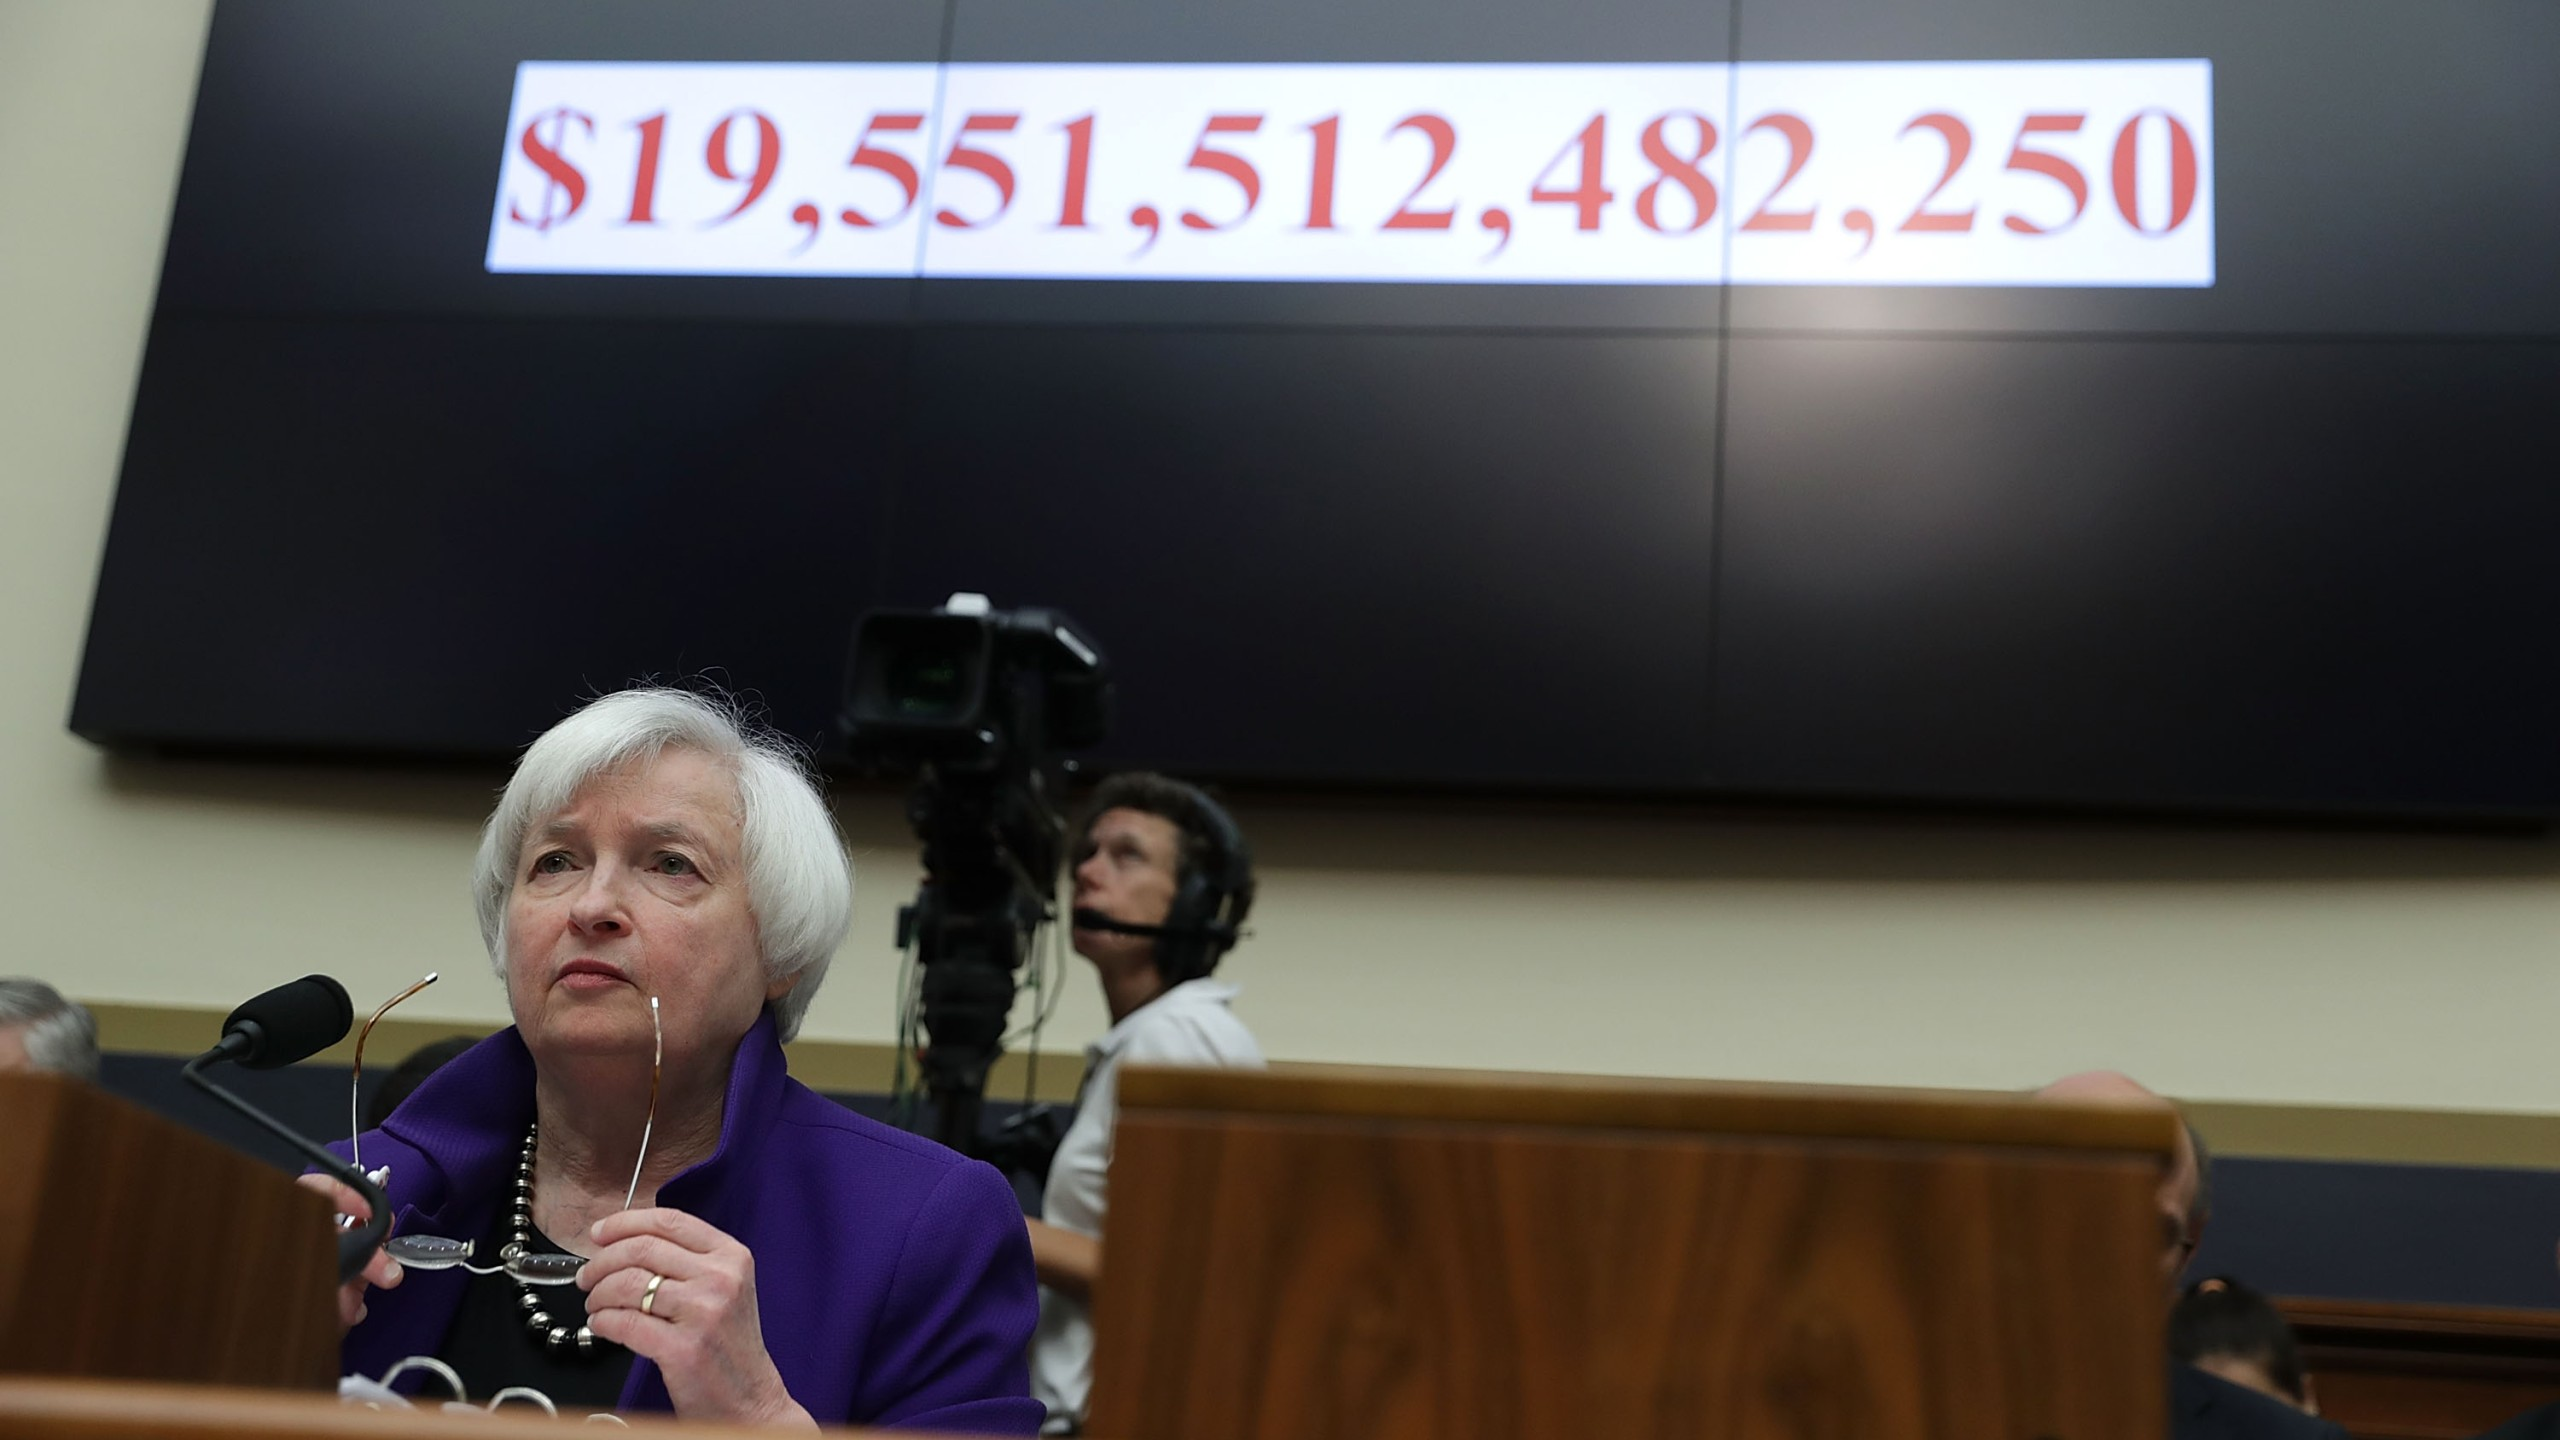 As the number of the current U.S. national debt is seen on a screen, Federal Reserve Board Chair Janet Yellen testifies during a hearing before the House Financial Services Committee September 28, 2016 on Capitol Hill in Washington, DC. (Credit: Alex Wong/Getty Images)